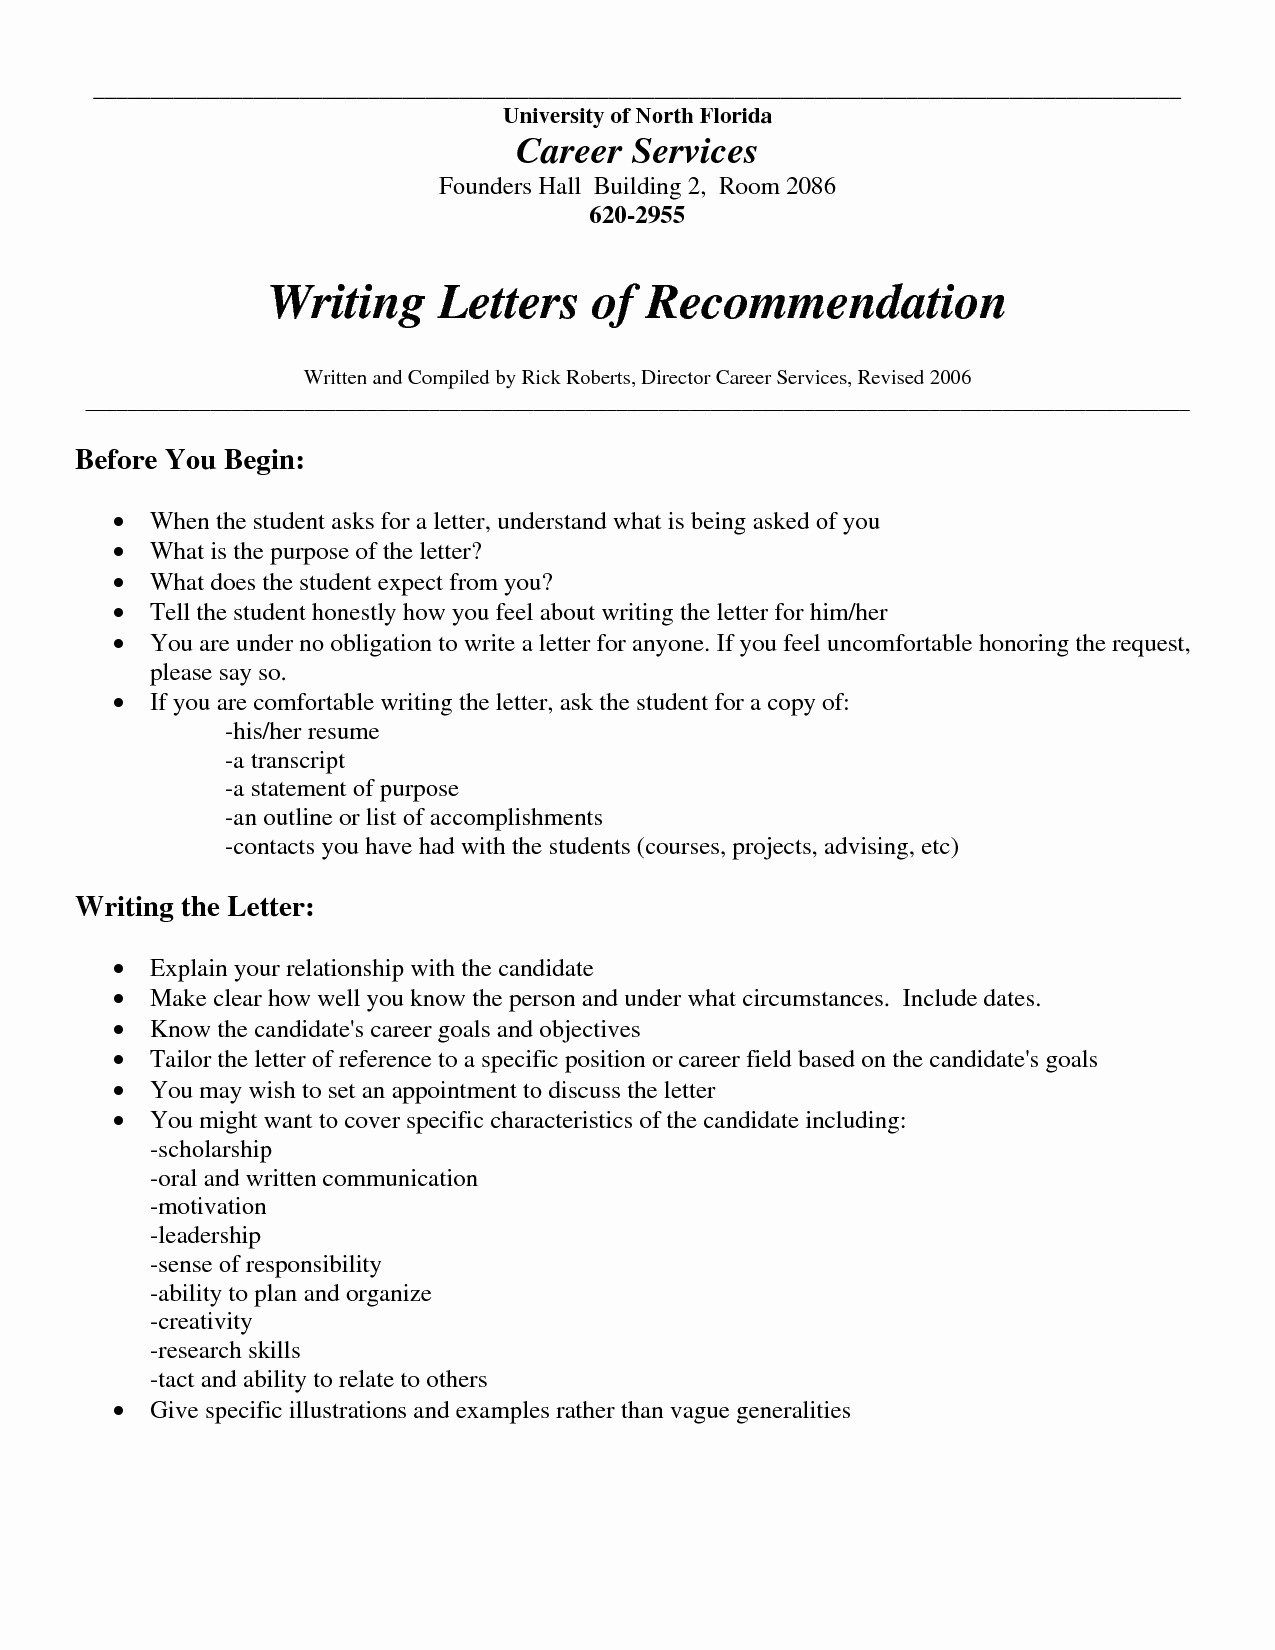 Read This Before You Write! Letter of